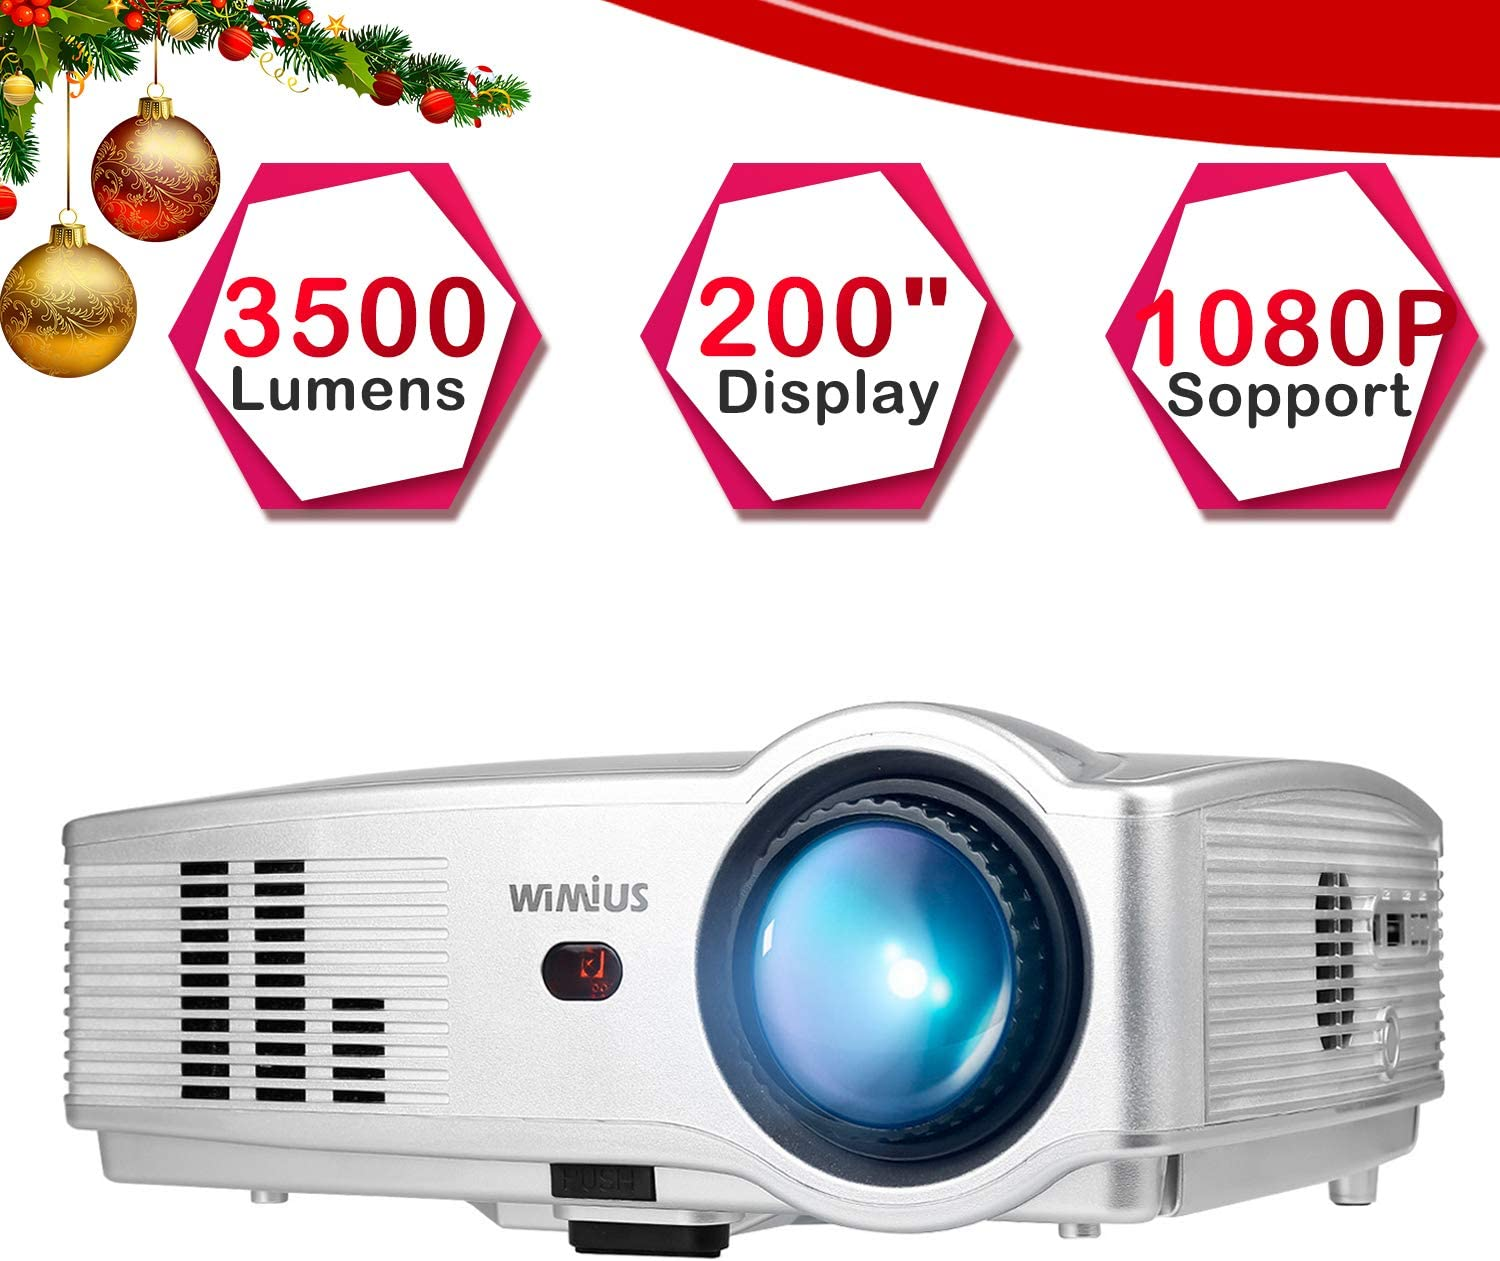 Proyectores, Proyector Full HD 3500 Lúmenes Support 1080P (T4 ...